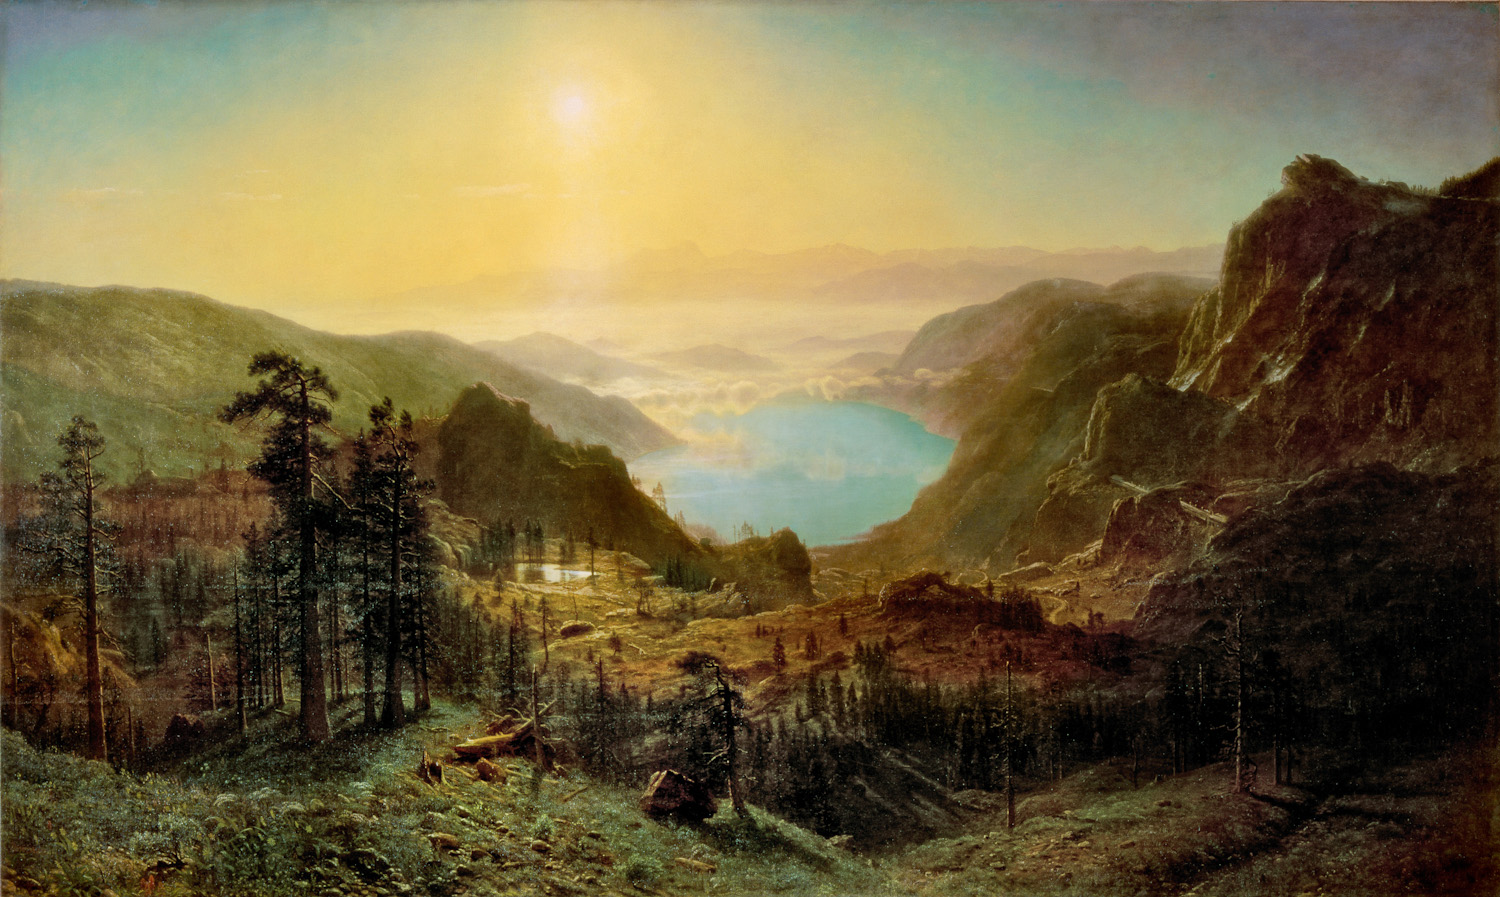 Albert Bierstadt (American, 1830-1902)Donner Lake from the Summit, 1873Oil on canvas: 72 1/8 x 120 3/16 in. (183.2 x 305.3 cm)Gift of Archer Milton Huntington, 1909.16